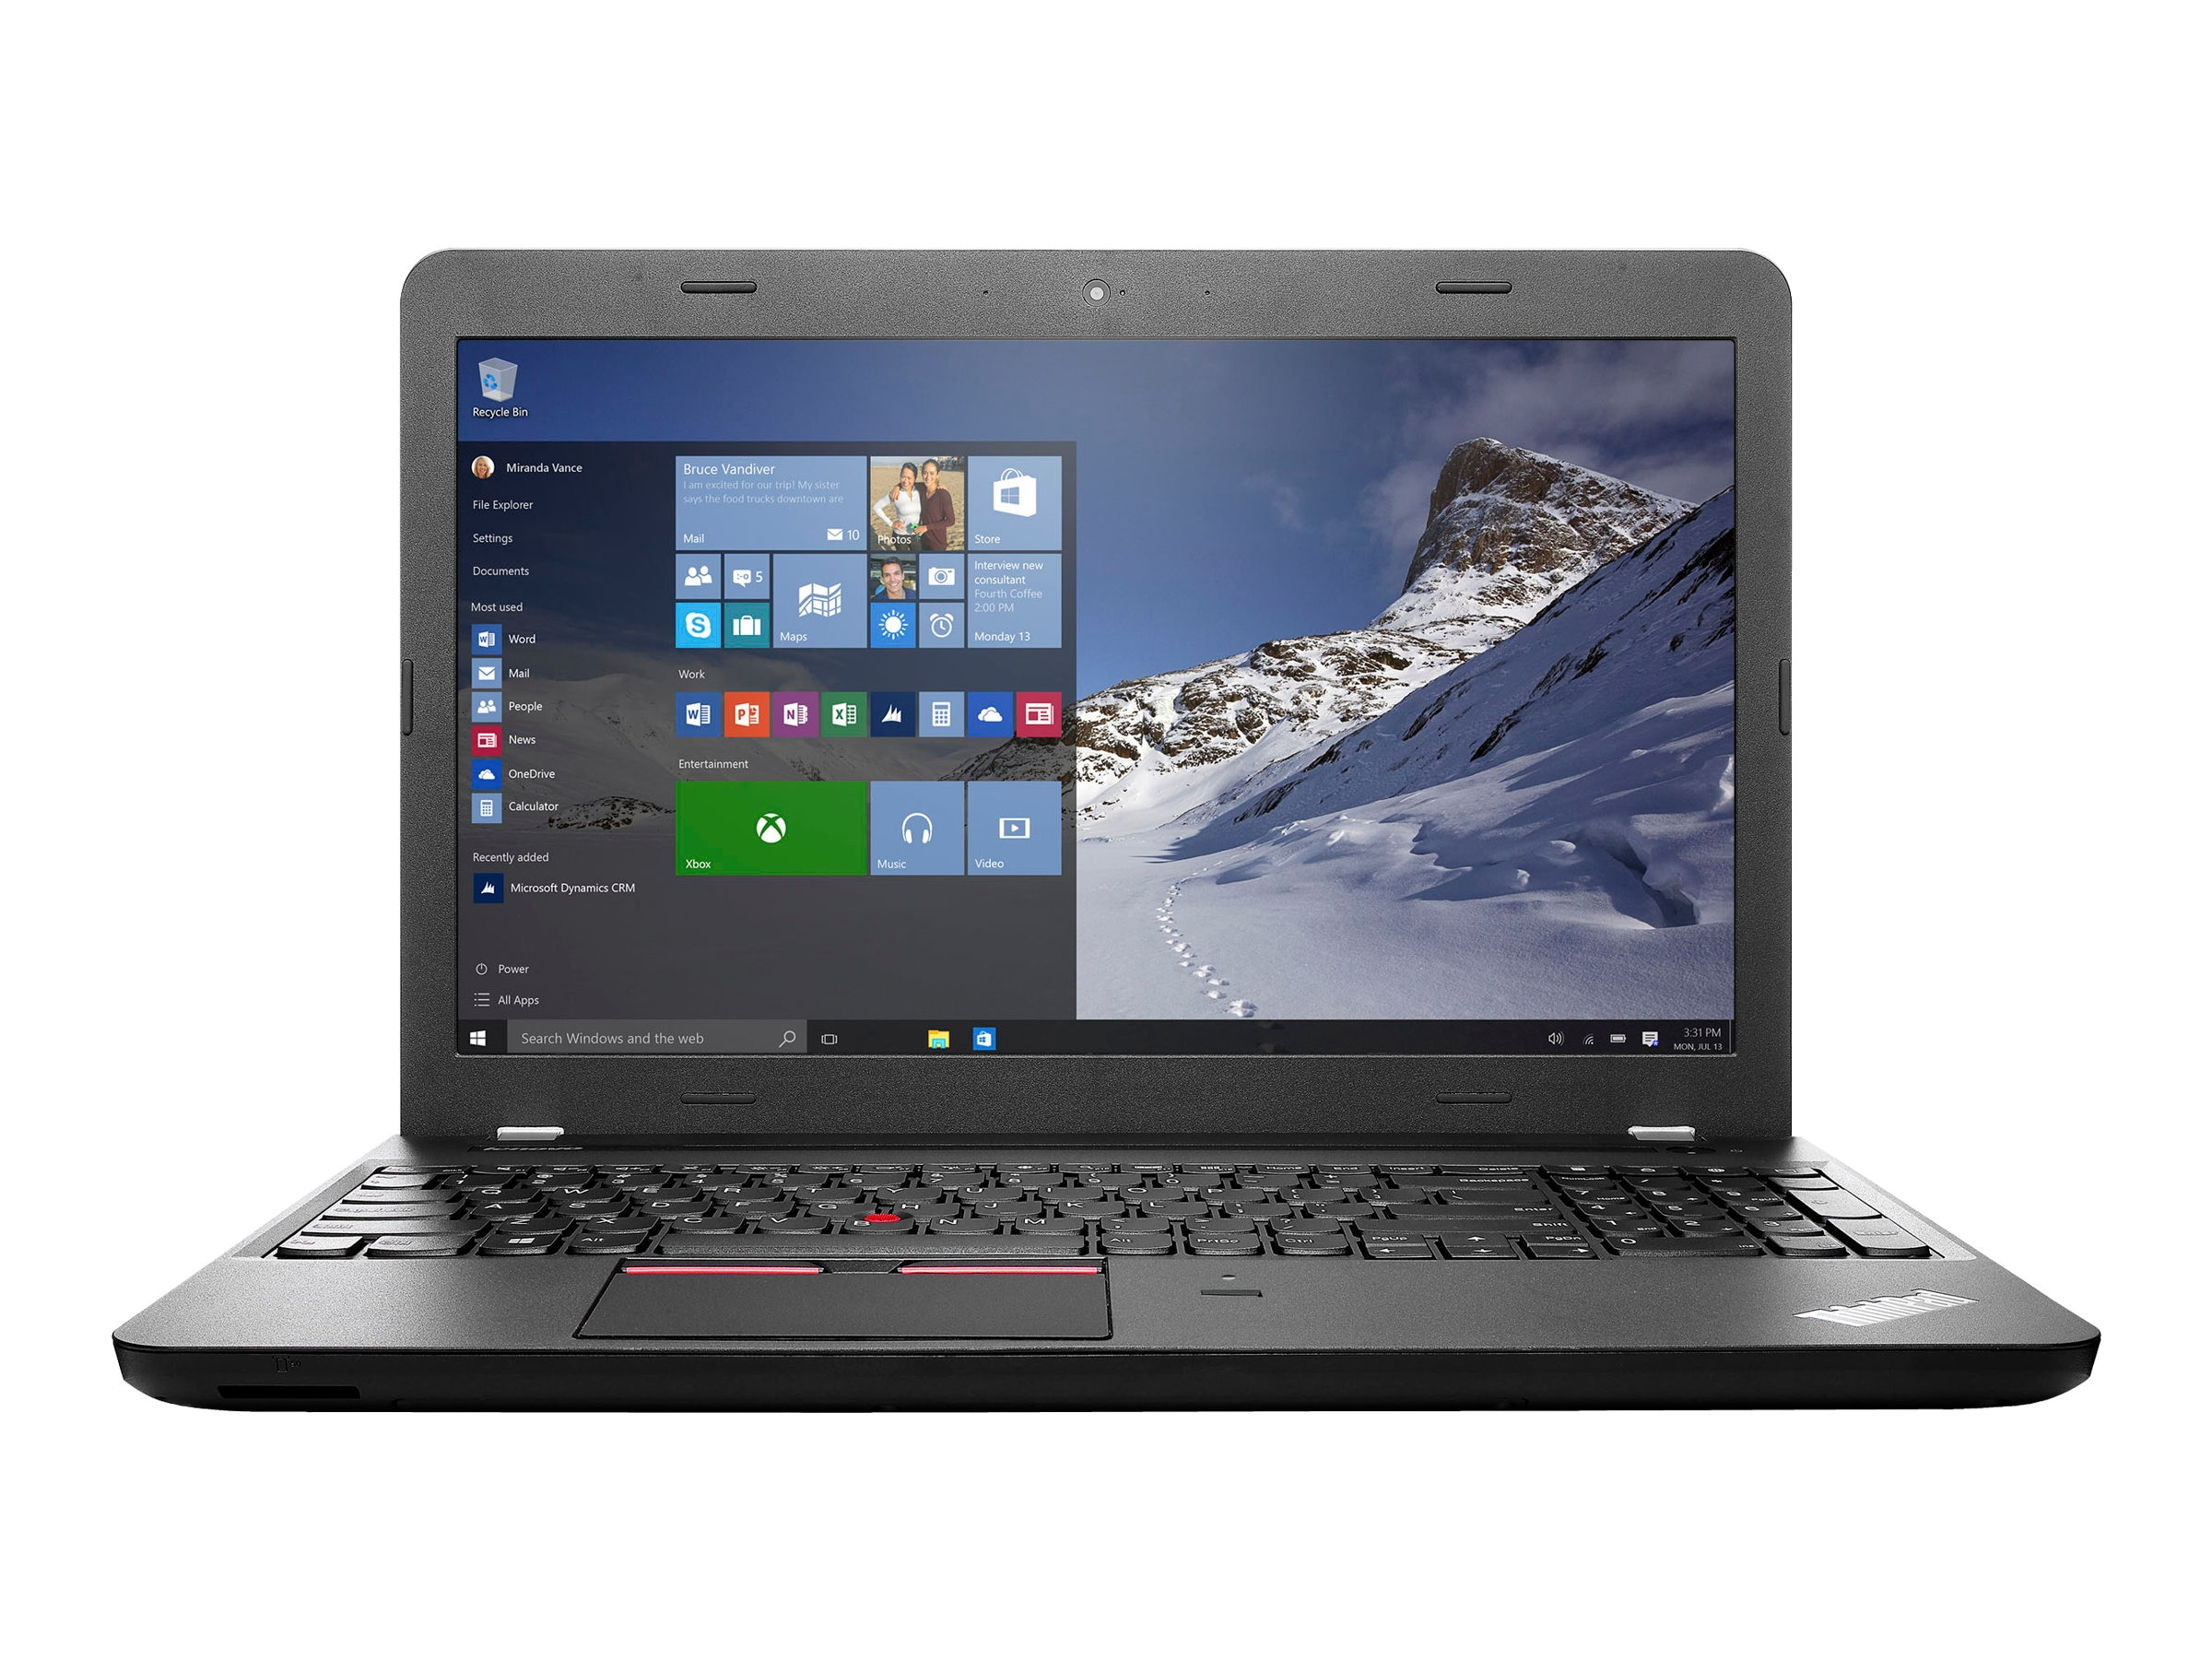 Lenovo TopSeller ThinkPad E560 2.3GHz Core i5 15.6in display, 20EV002PUS